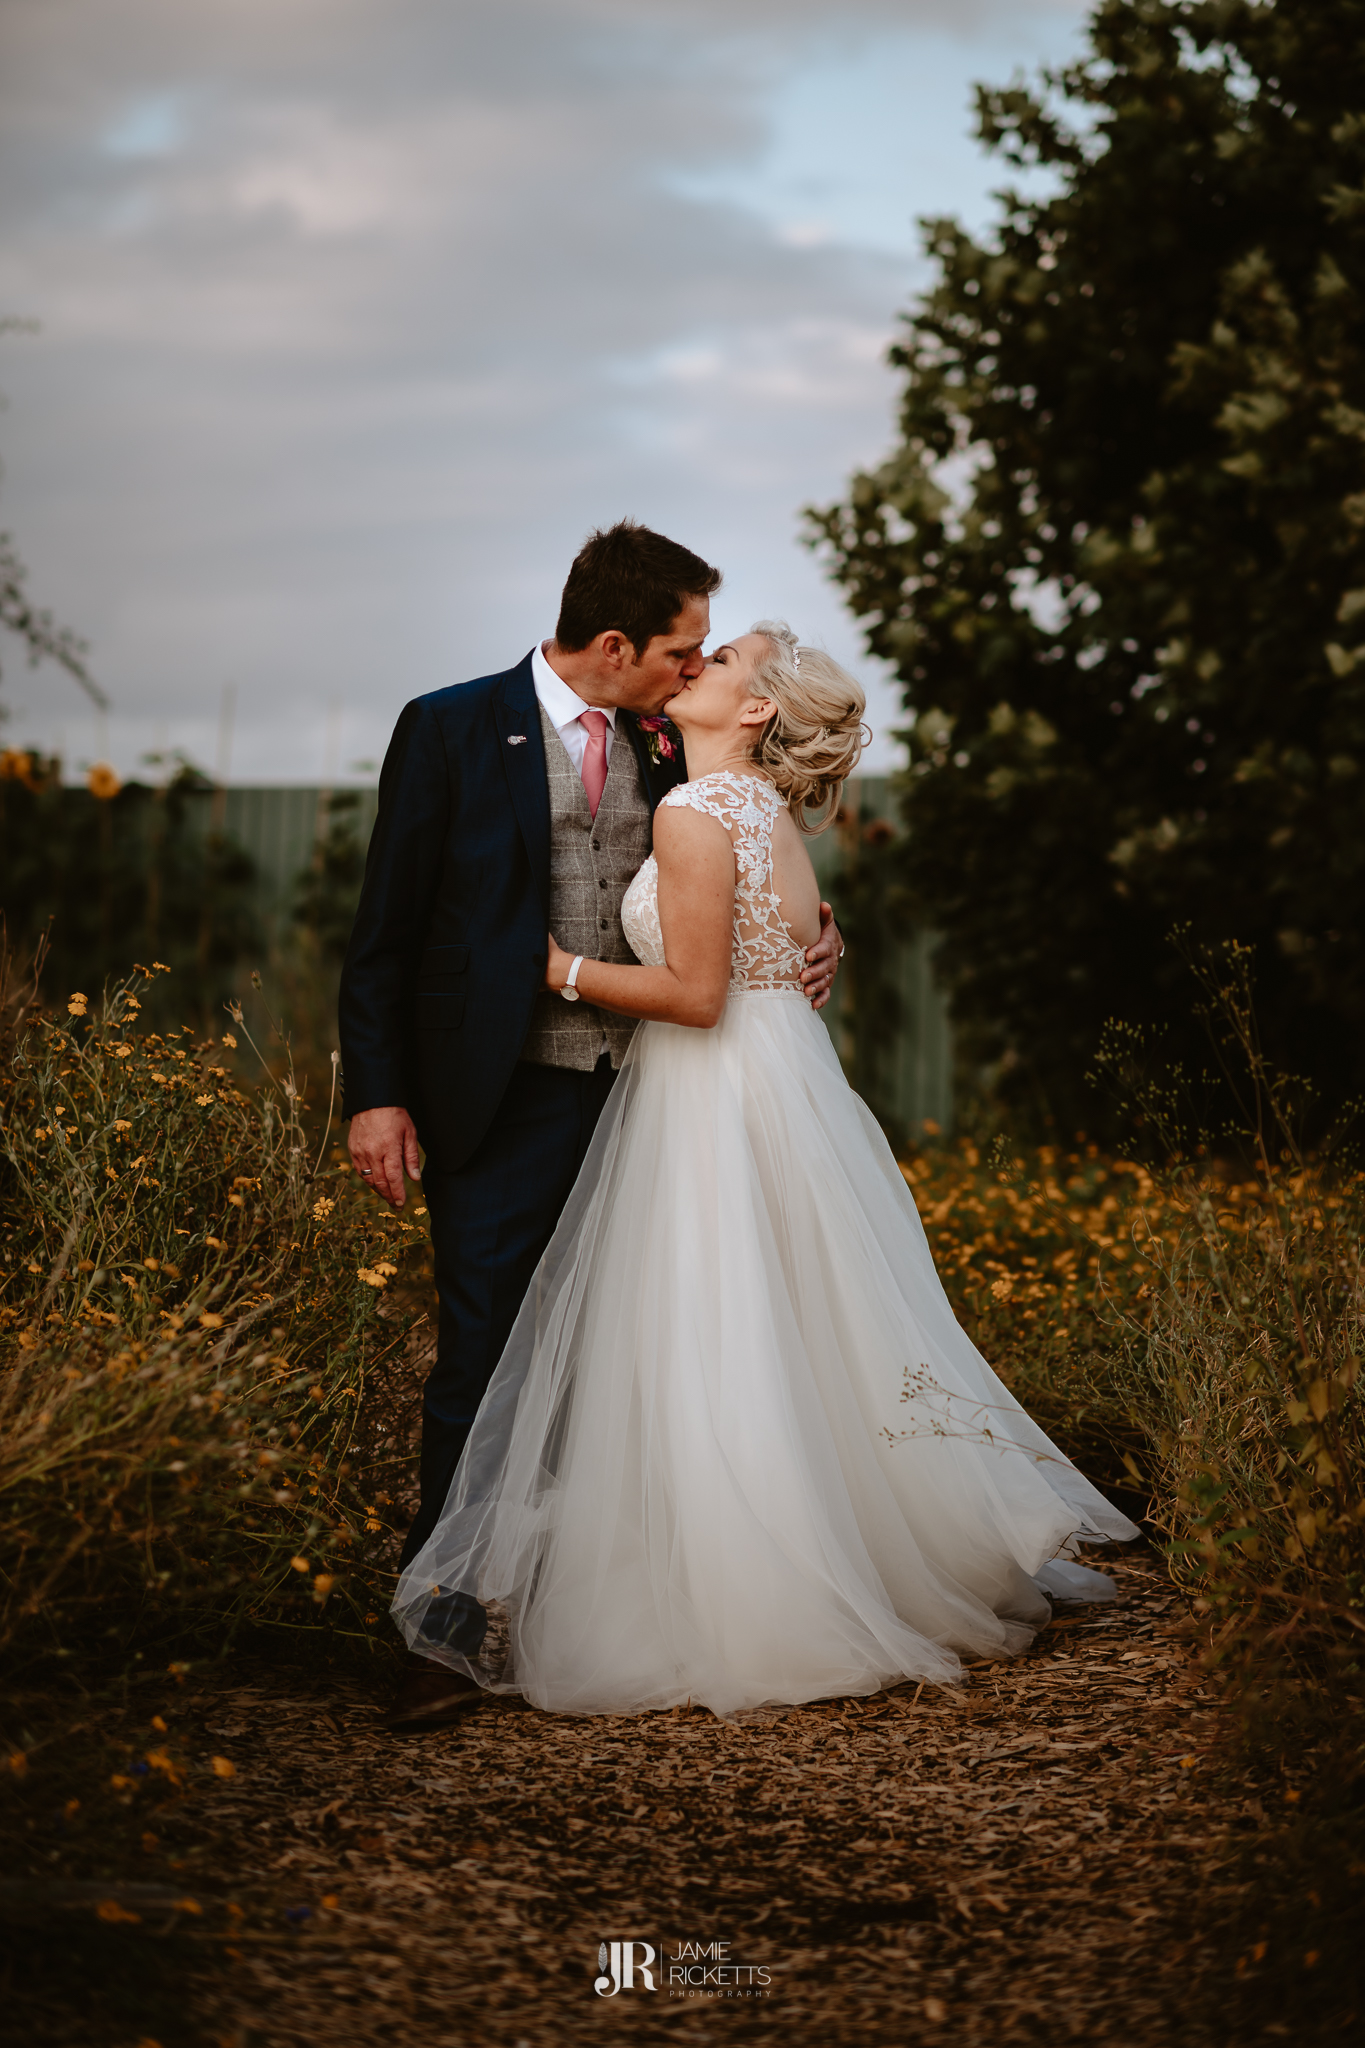 Wroxeter-Hotel-Wedding-Photography-In-Shropshire-By-Shropshire-Wedding-Photographer-Jamie-Ricketts-199.JPG